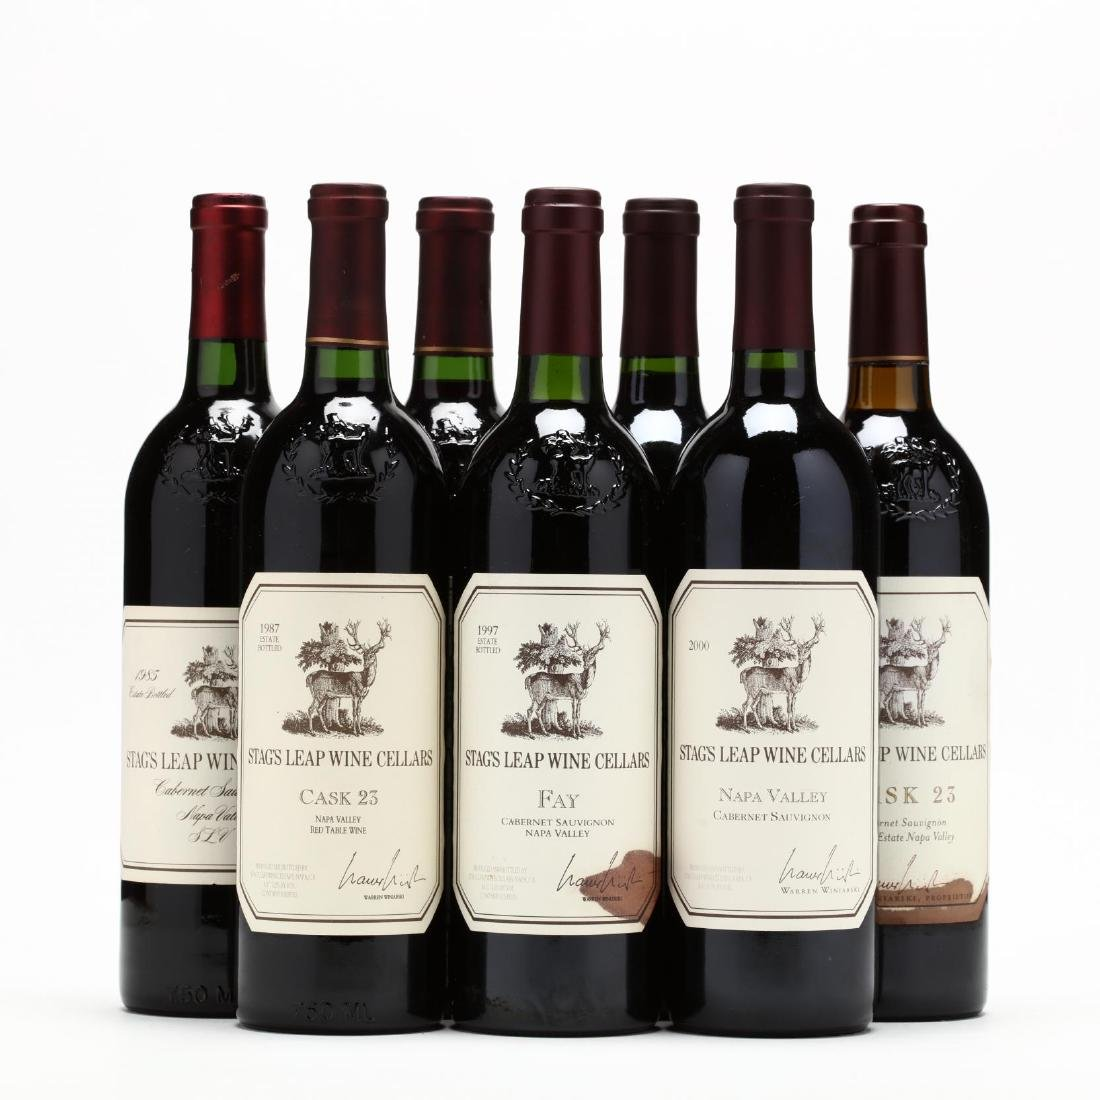 1985, 1987, 1997, 2000 & 2001 Stag's Leap Wine Cellars